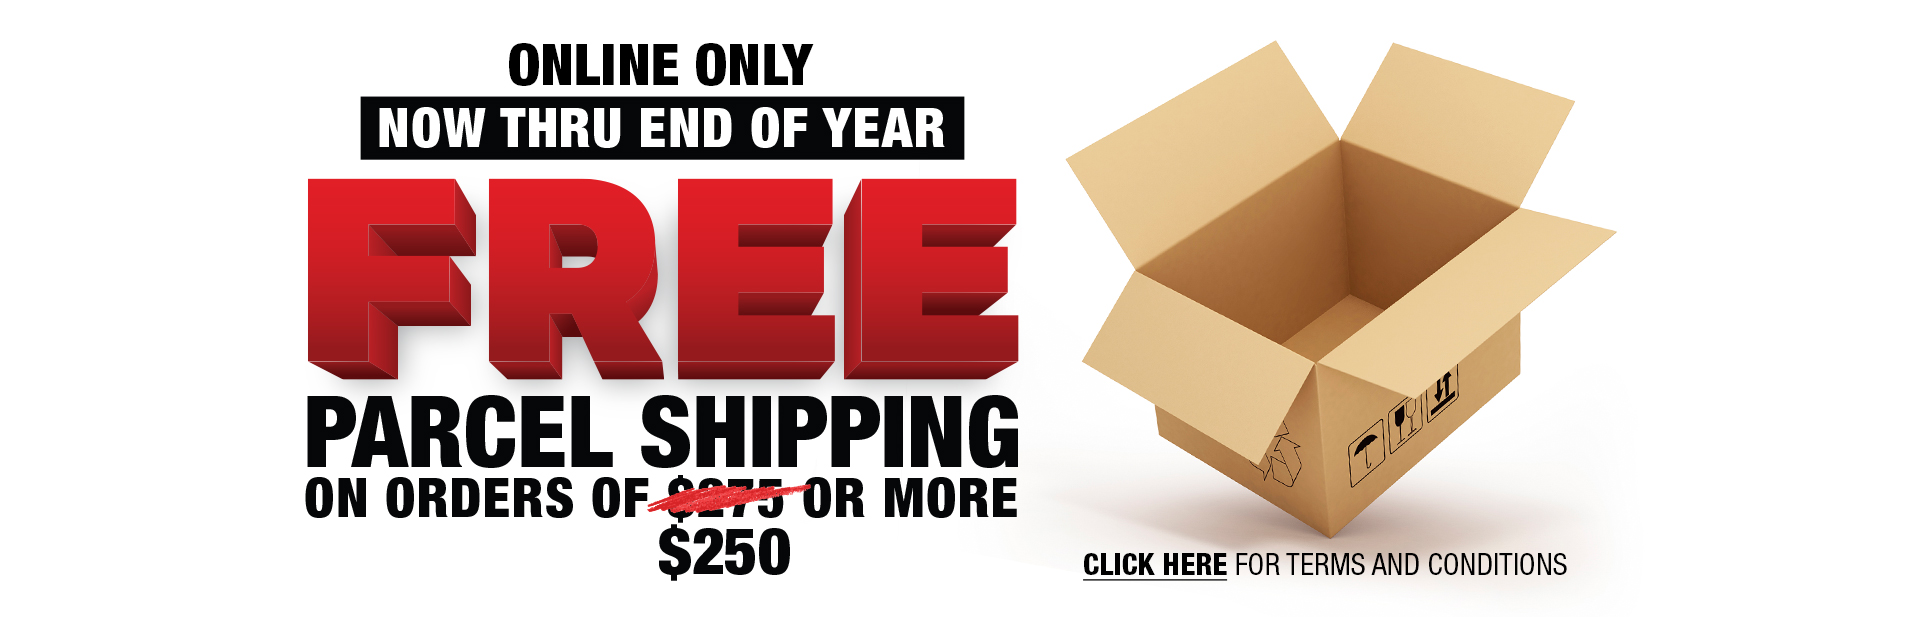 Free parcel shipping on orders of $250 or more. Now thru end of year.